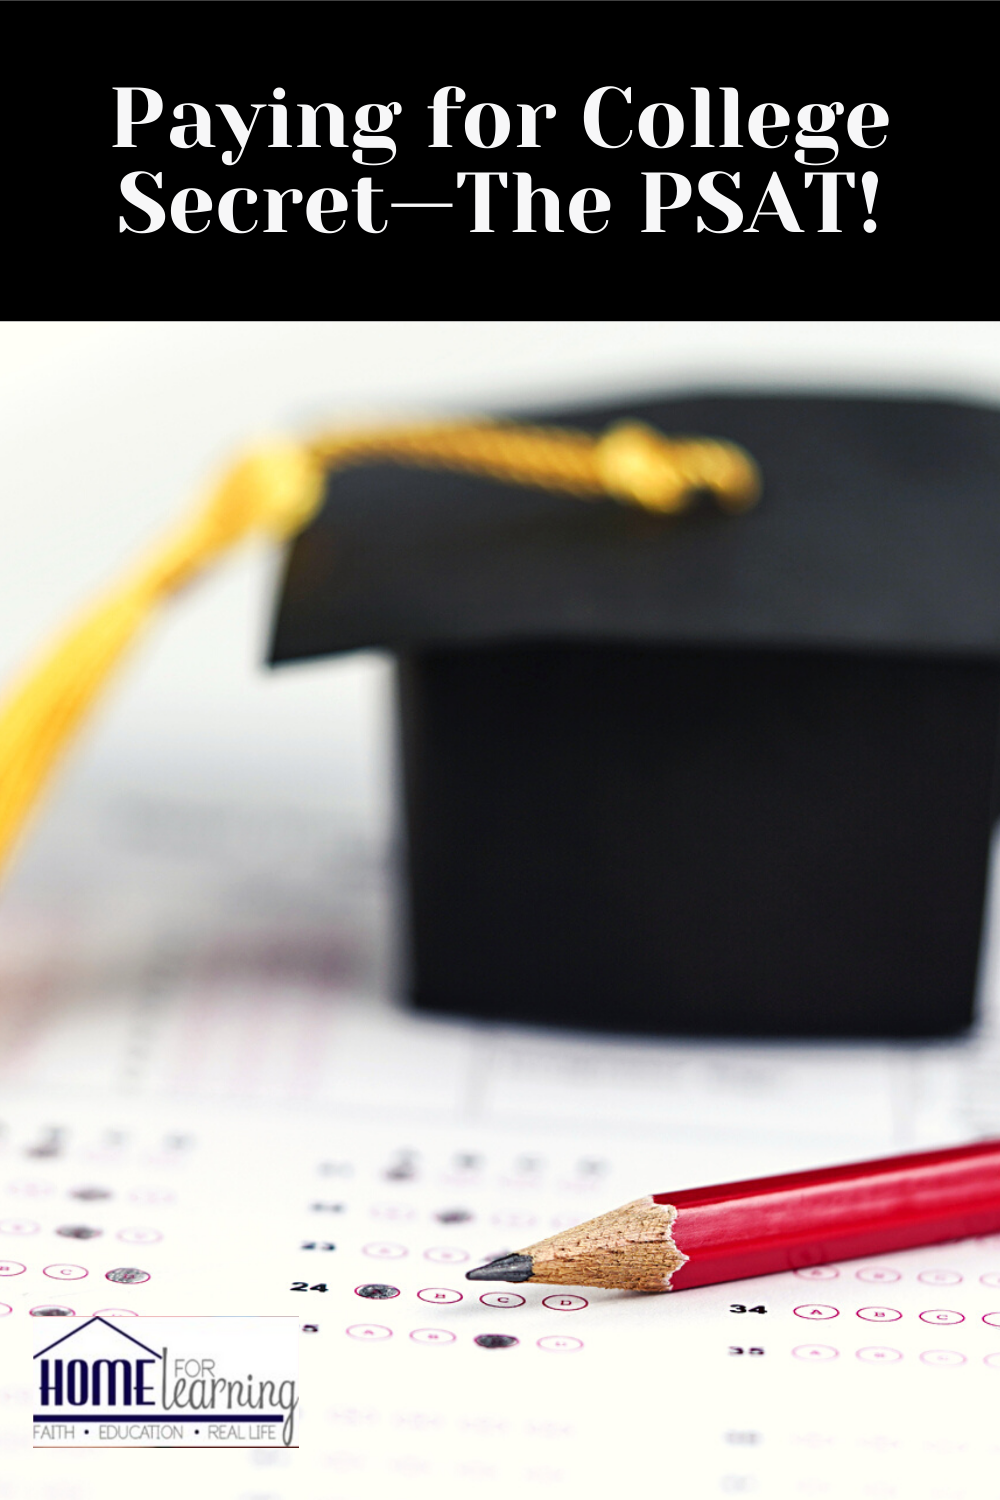 If your score sits within a certain predetermined range, you could be in the running for many amazing scholarship opportunities from many colleges.